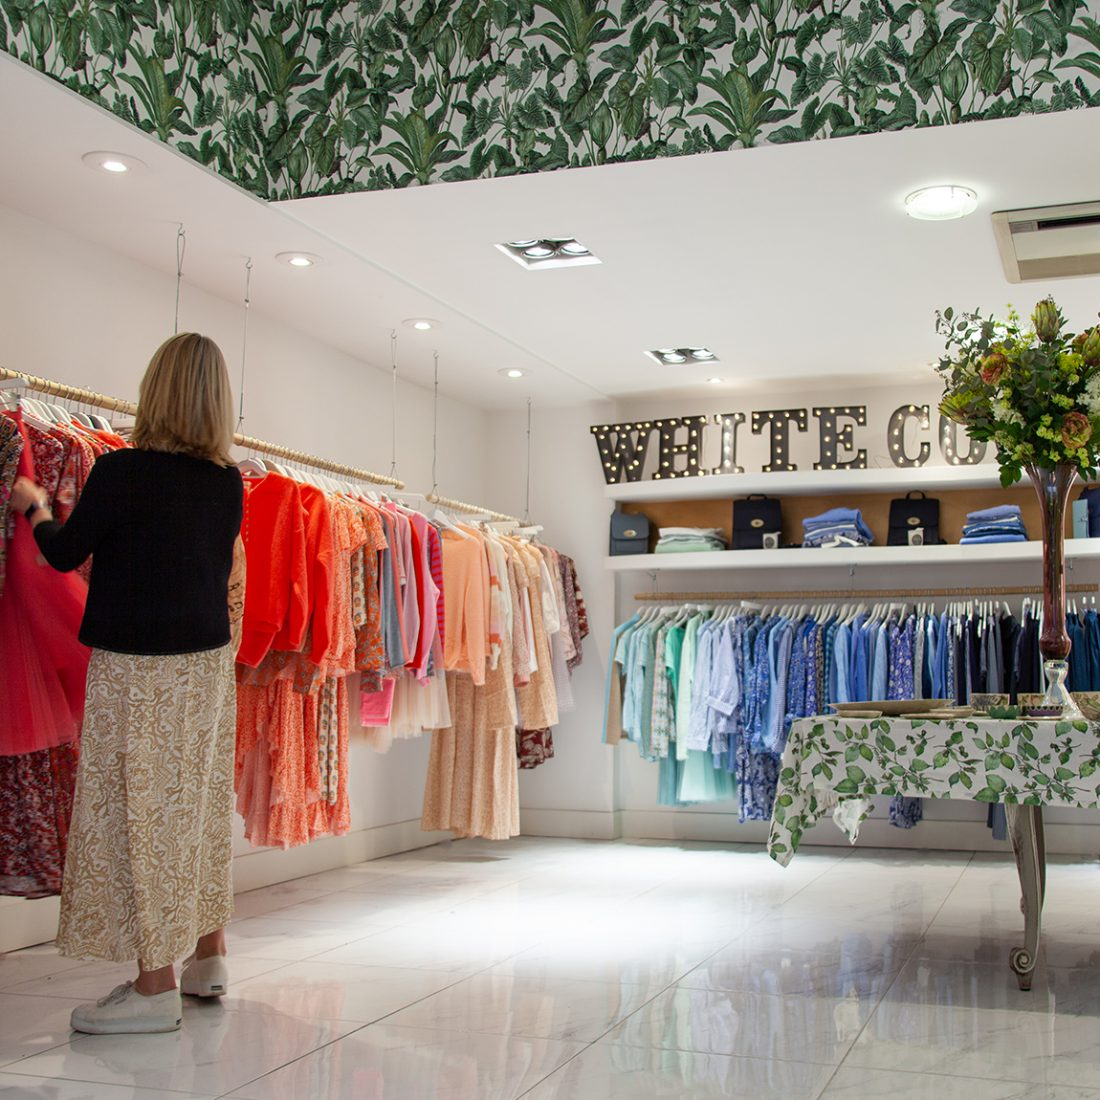 Interior of the White Coco clothes shop with brightly coloured women's clothes handing on rails, an illuminated sign for the shop and a woman browsing.